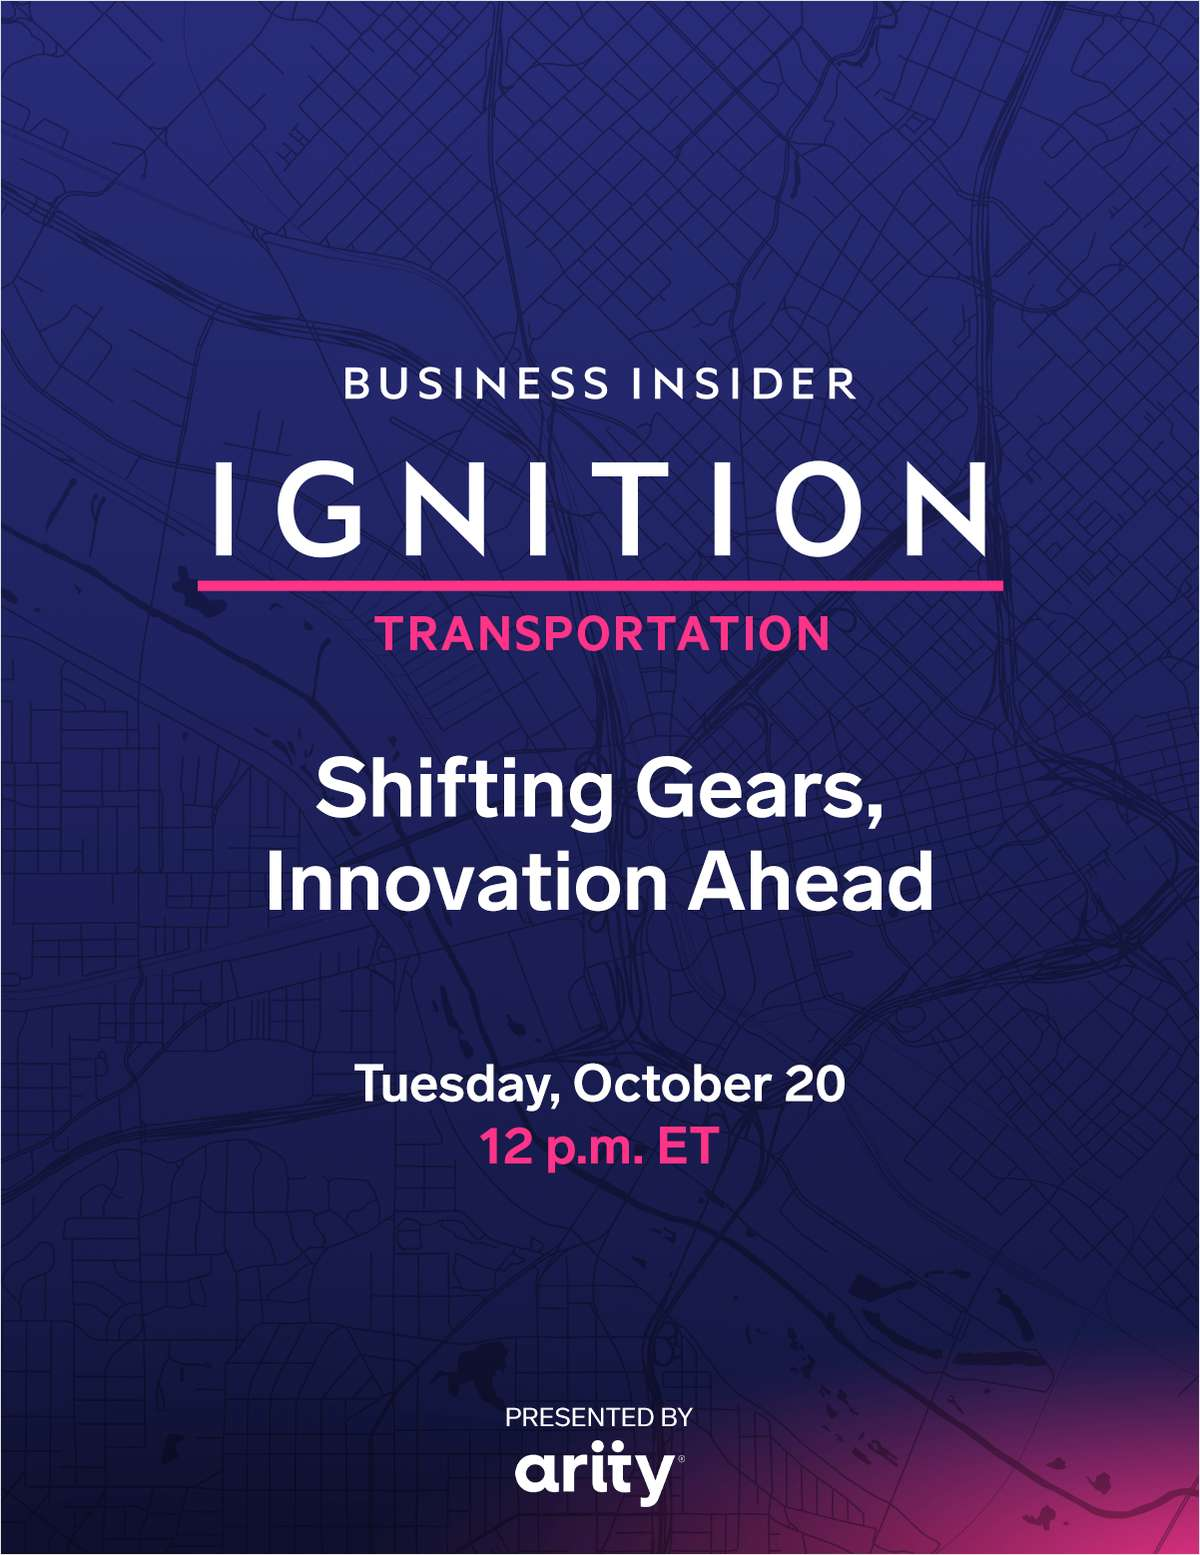 IGNITION: Transportation - Shifting Gears, Innovation Ahead